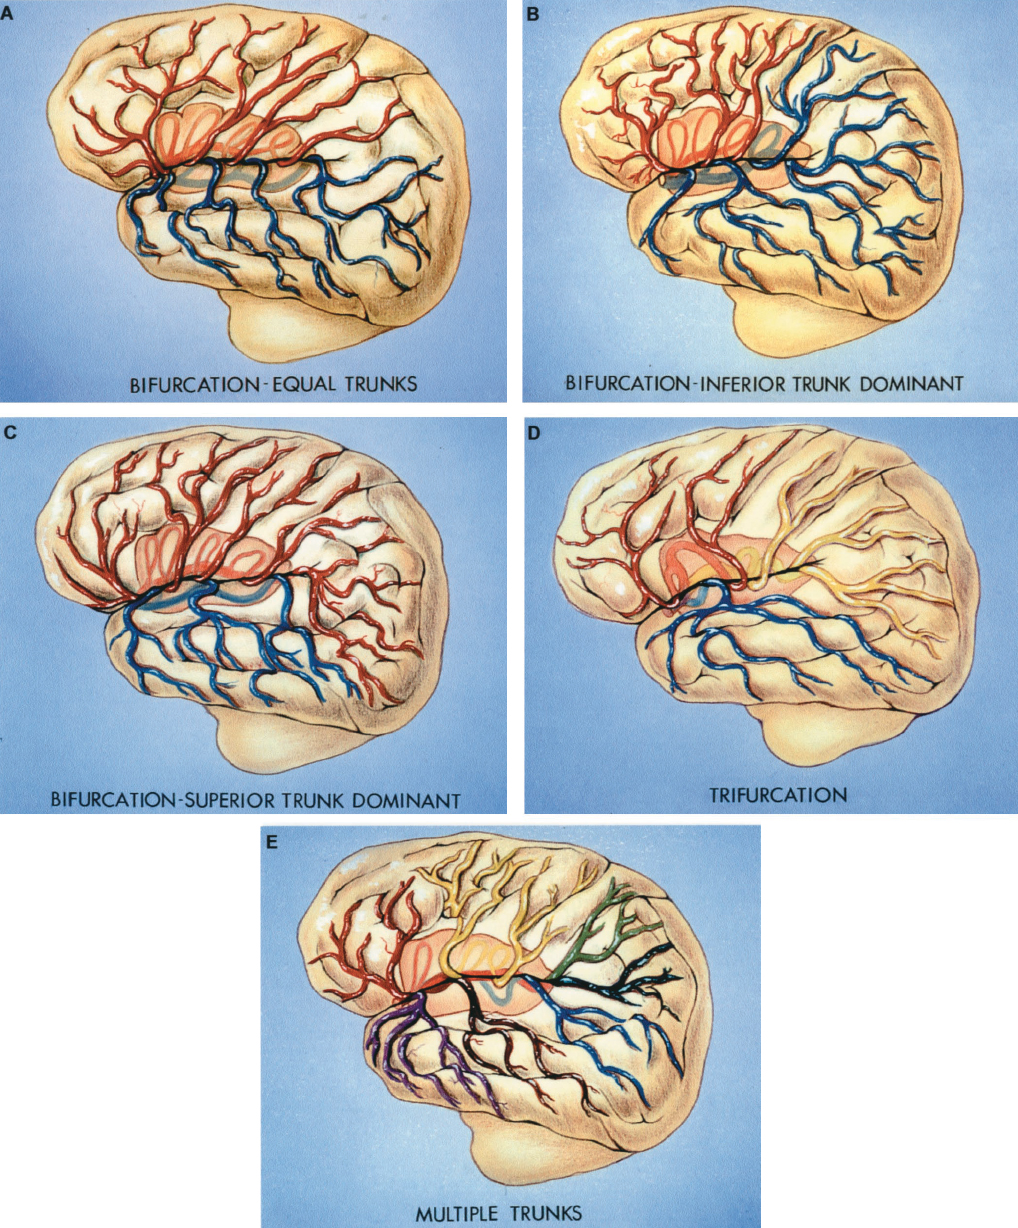 FIGURE 2.18. Branching patterns of the middle cerebral artery. The main trunk divides in a bifurcation in 78% of hemispheres and in a trifurcation in 12%. In the remaining 10%, the main trunk divides into multiple (four or more) branches. A, bifurcation: equal trunk pattern (18% of hemispheres). The main trunk divides into superior (red) and inferior (blue) trunks that are of approximately the same diameter and supply cortical areas of similar size. The superior trunk supplies the frontal and parietal areas and the inferior trunk supplies the temporal and temporo-occipital areas. B, bifurcation: inferior trunk dominant (32% of hemispheres). The inferior trunk (blue) has a larger diameter and area of supply than the superior trunk (red). The inferior trunk supplies the temporal, occipital, and parietal areas, and the superior trunk supplies the frontal areas. C, bifurcation: superior trunk dominant (28% of hemispheres). The superior trunk (red) has the largest diameter and area of supply; it supplies the frontal, parietal, temporo-occipital, and posterior temporal areas, and the smaller inferior trunk (blue) supplies the temporopolar through the middle temporal areas. D, trifurcation pattern (12% of hemispheres). The main trunk of the middle cerebral artery divides into three trunks. The superior trunk (red) supplies the frontal areas, the middle trunk (yellow) supplies the areas around the posterior end of the sylvian fissure, and the inferior trunk (blue) supplies the temporal areas. E, multiple trunks (10% of hemispheres). The main trunk gives rise to multiple smaller trunks. Two trunks supply the frontal areas (red and yellow), two supply the parietal areas (light green and dark green), and three supply the temporal and occipital areas (purple, brown, and blue). (From, Gibo H, Carver CC, Rhoton AL Jr, Lenkey C, Mitchell RJ: Microsurgical anatomy of the middle cerebral artery. J Neurosurg 54:151–169, 1981 [14].)